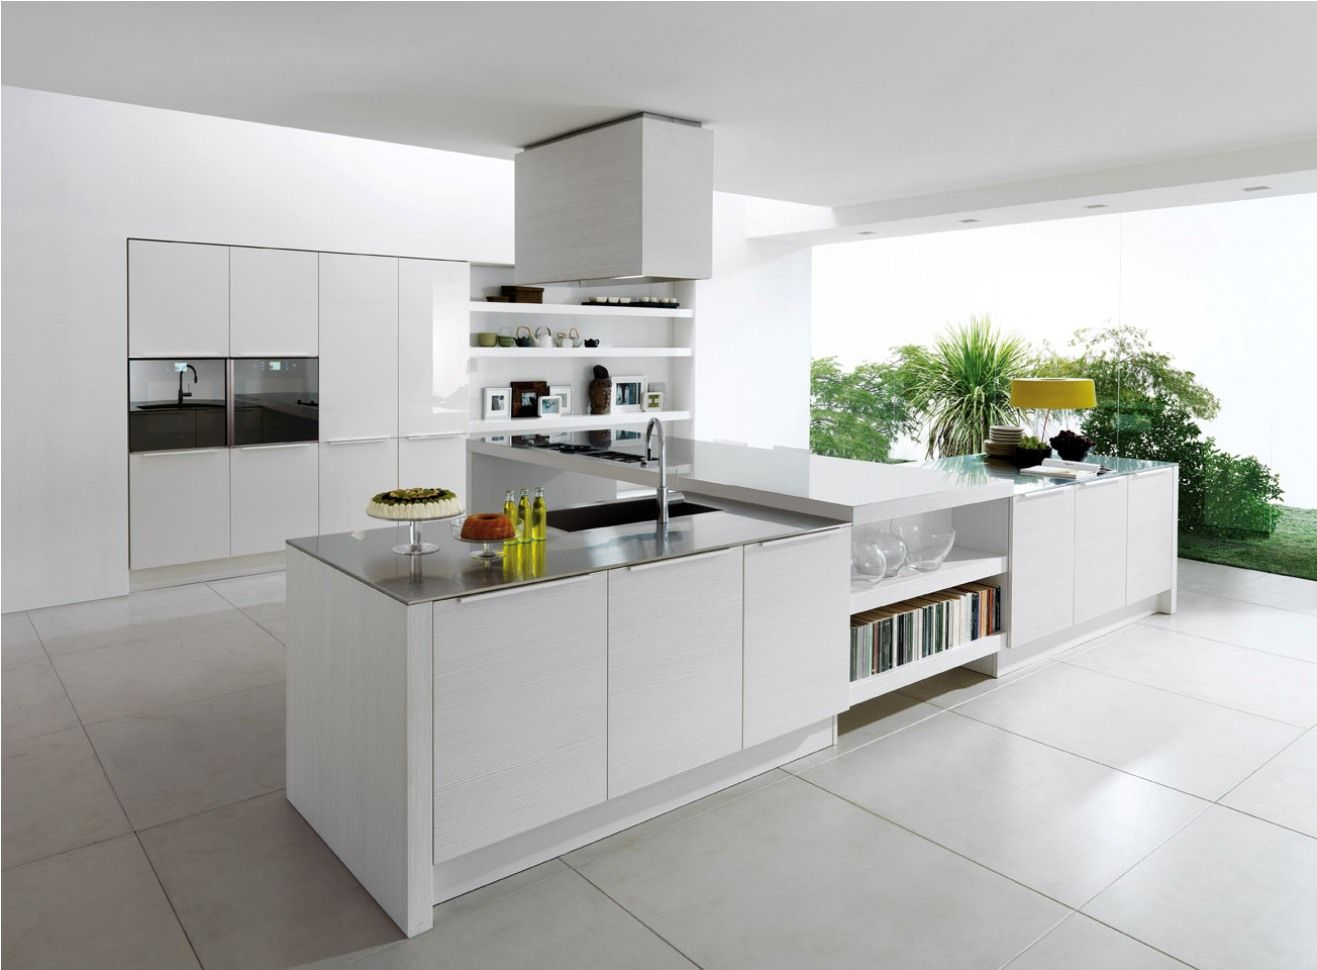 30 Contemporary White Kitchens Ideas | Pinterest | Kitchen design ...